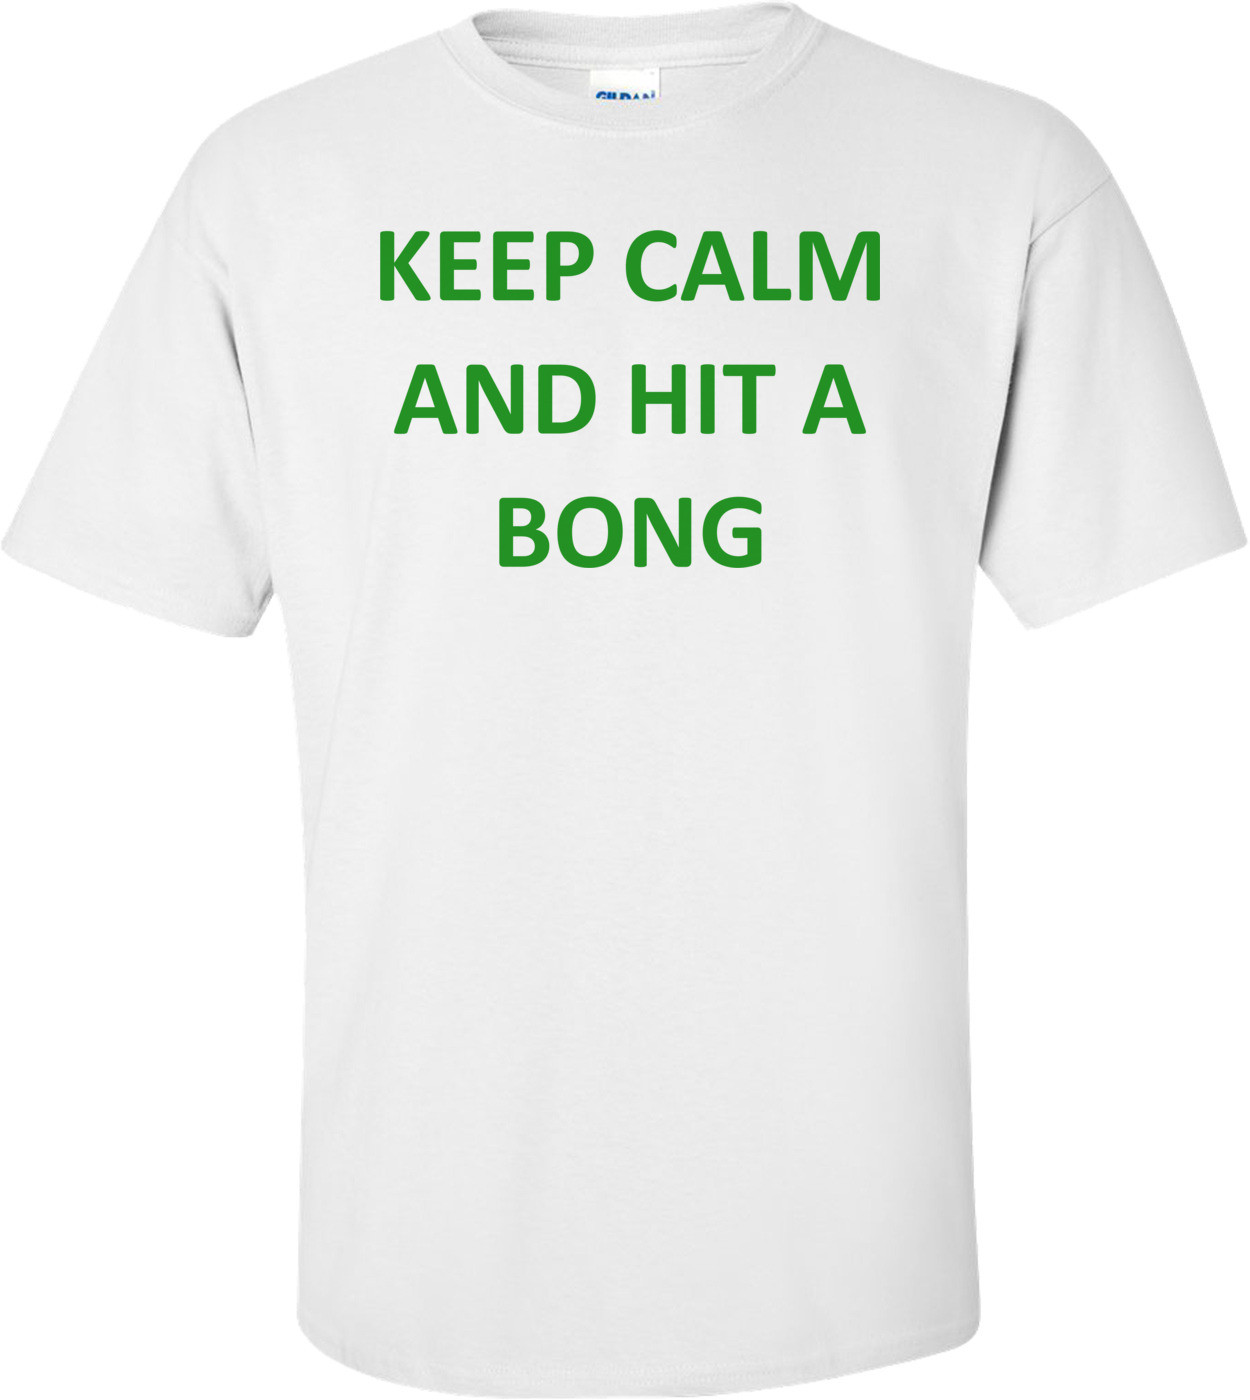 KEEP CALM AND HIT A BONG Shirt